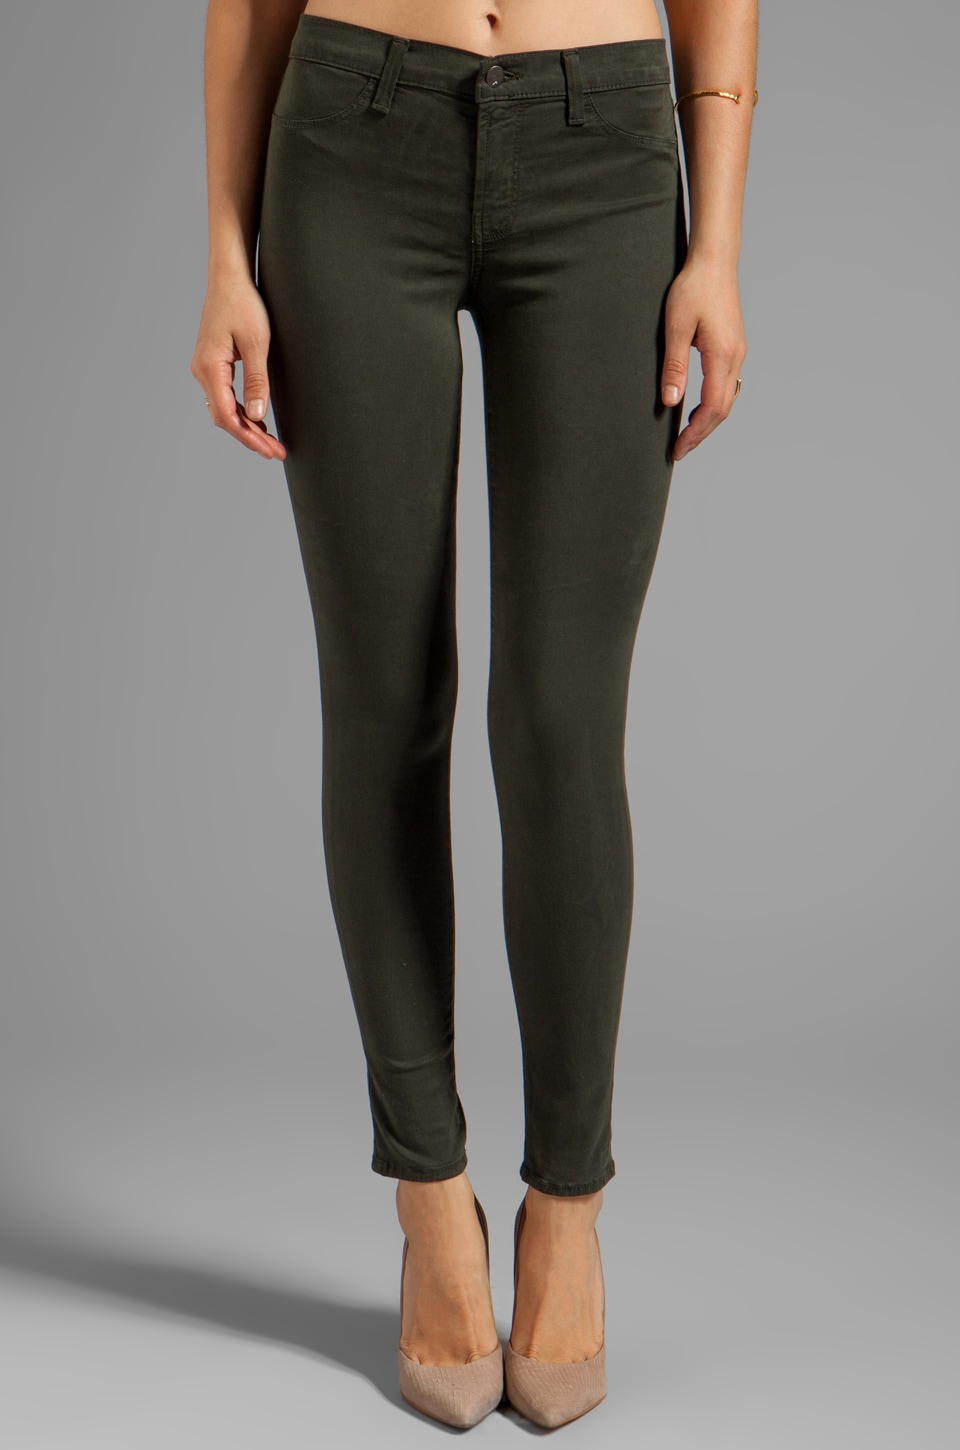 J Brand French Sateen Midrise Super Skinny in Presidio